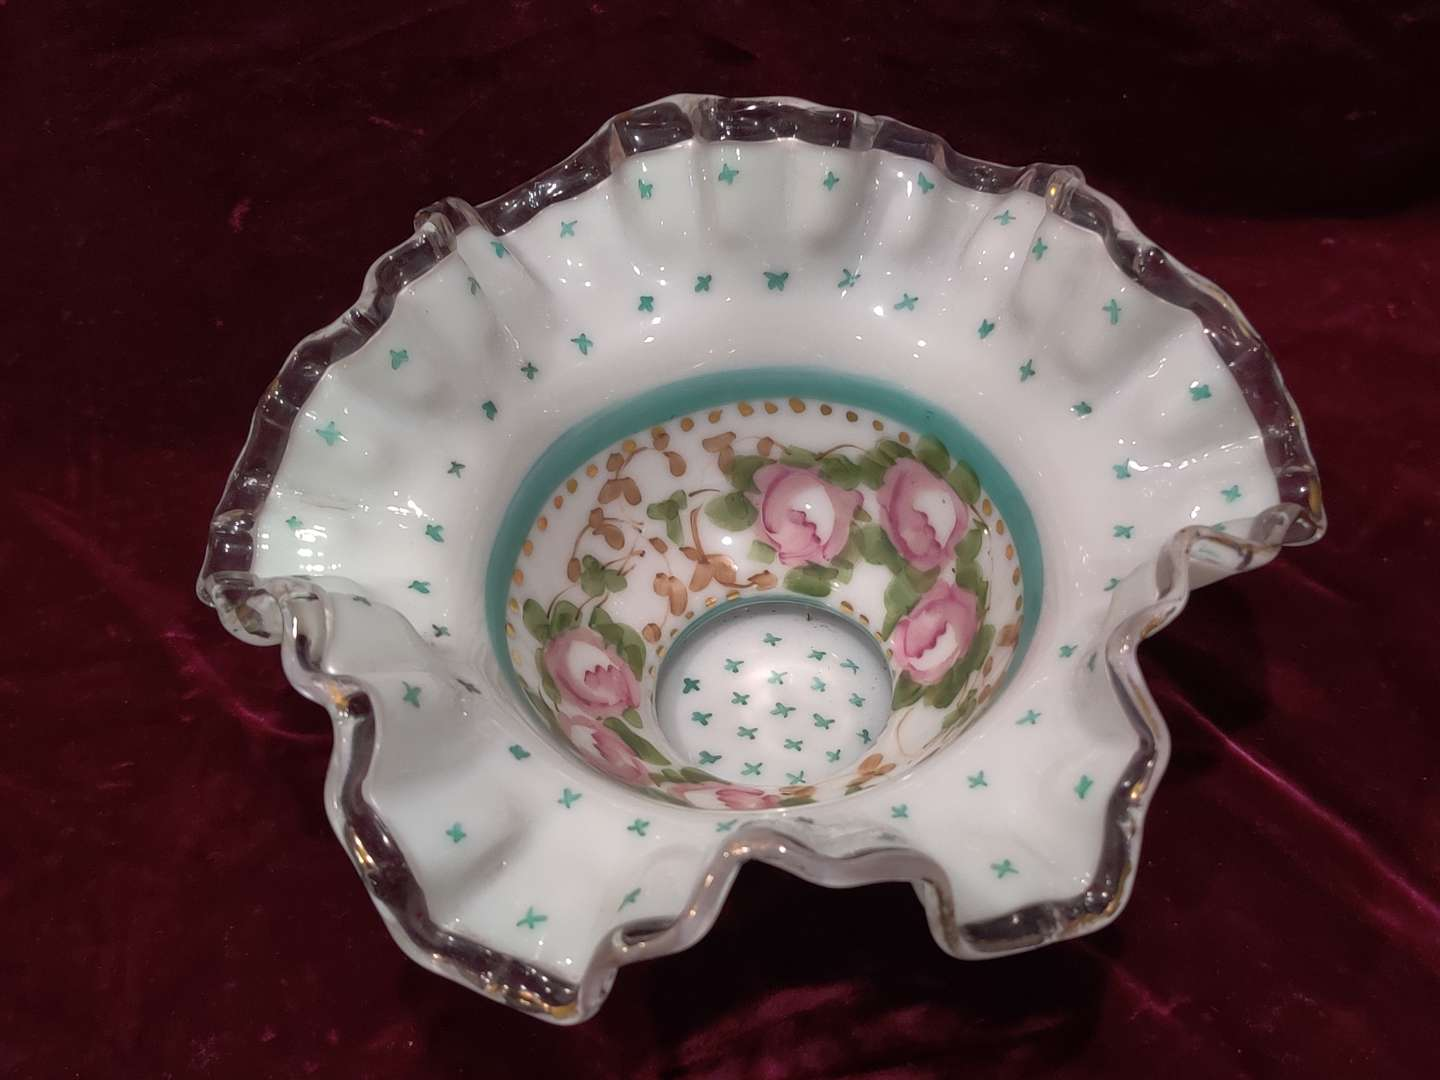 # 49 early Fenton hand-painted ruffle edge bowl 7.5 in wide and an excellent condition